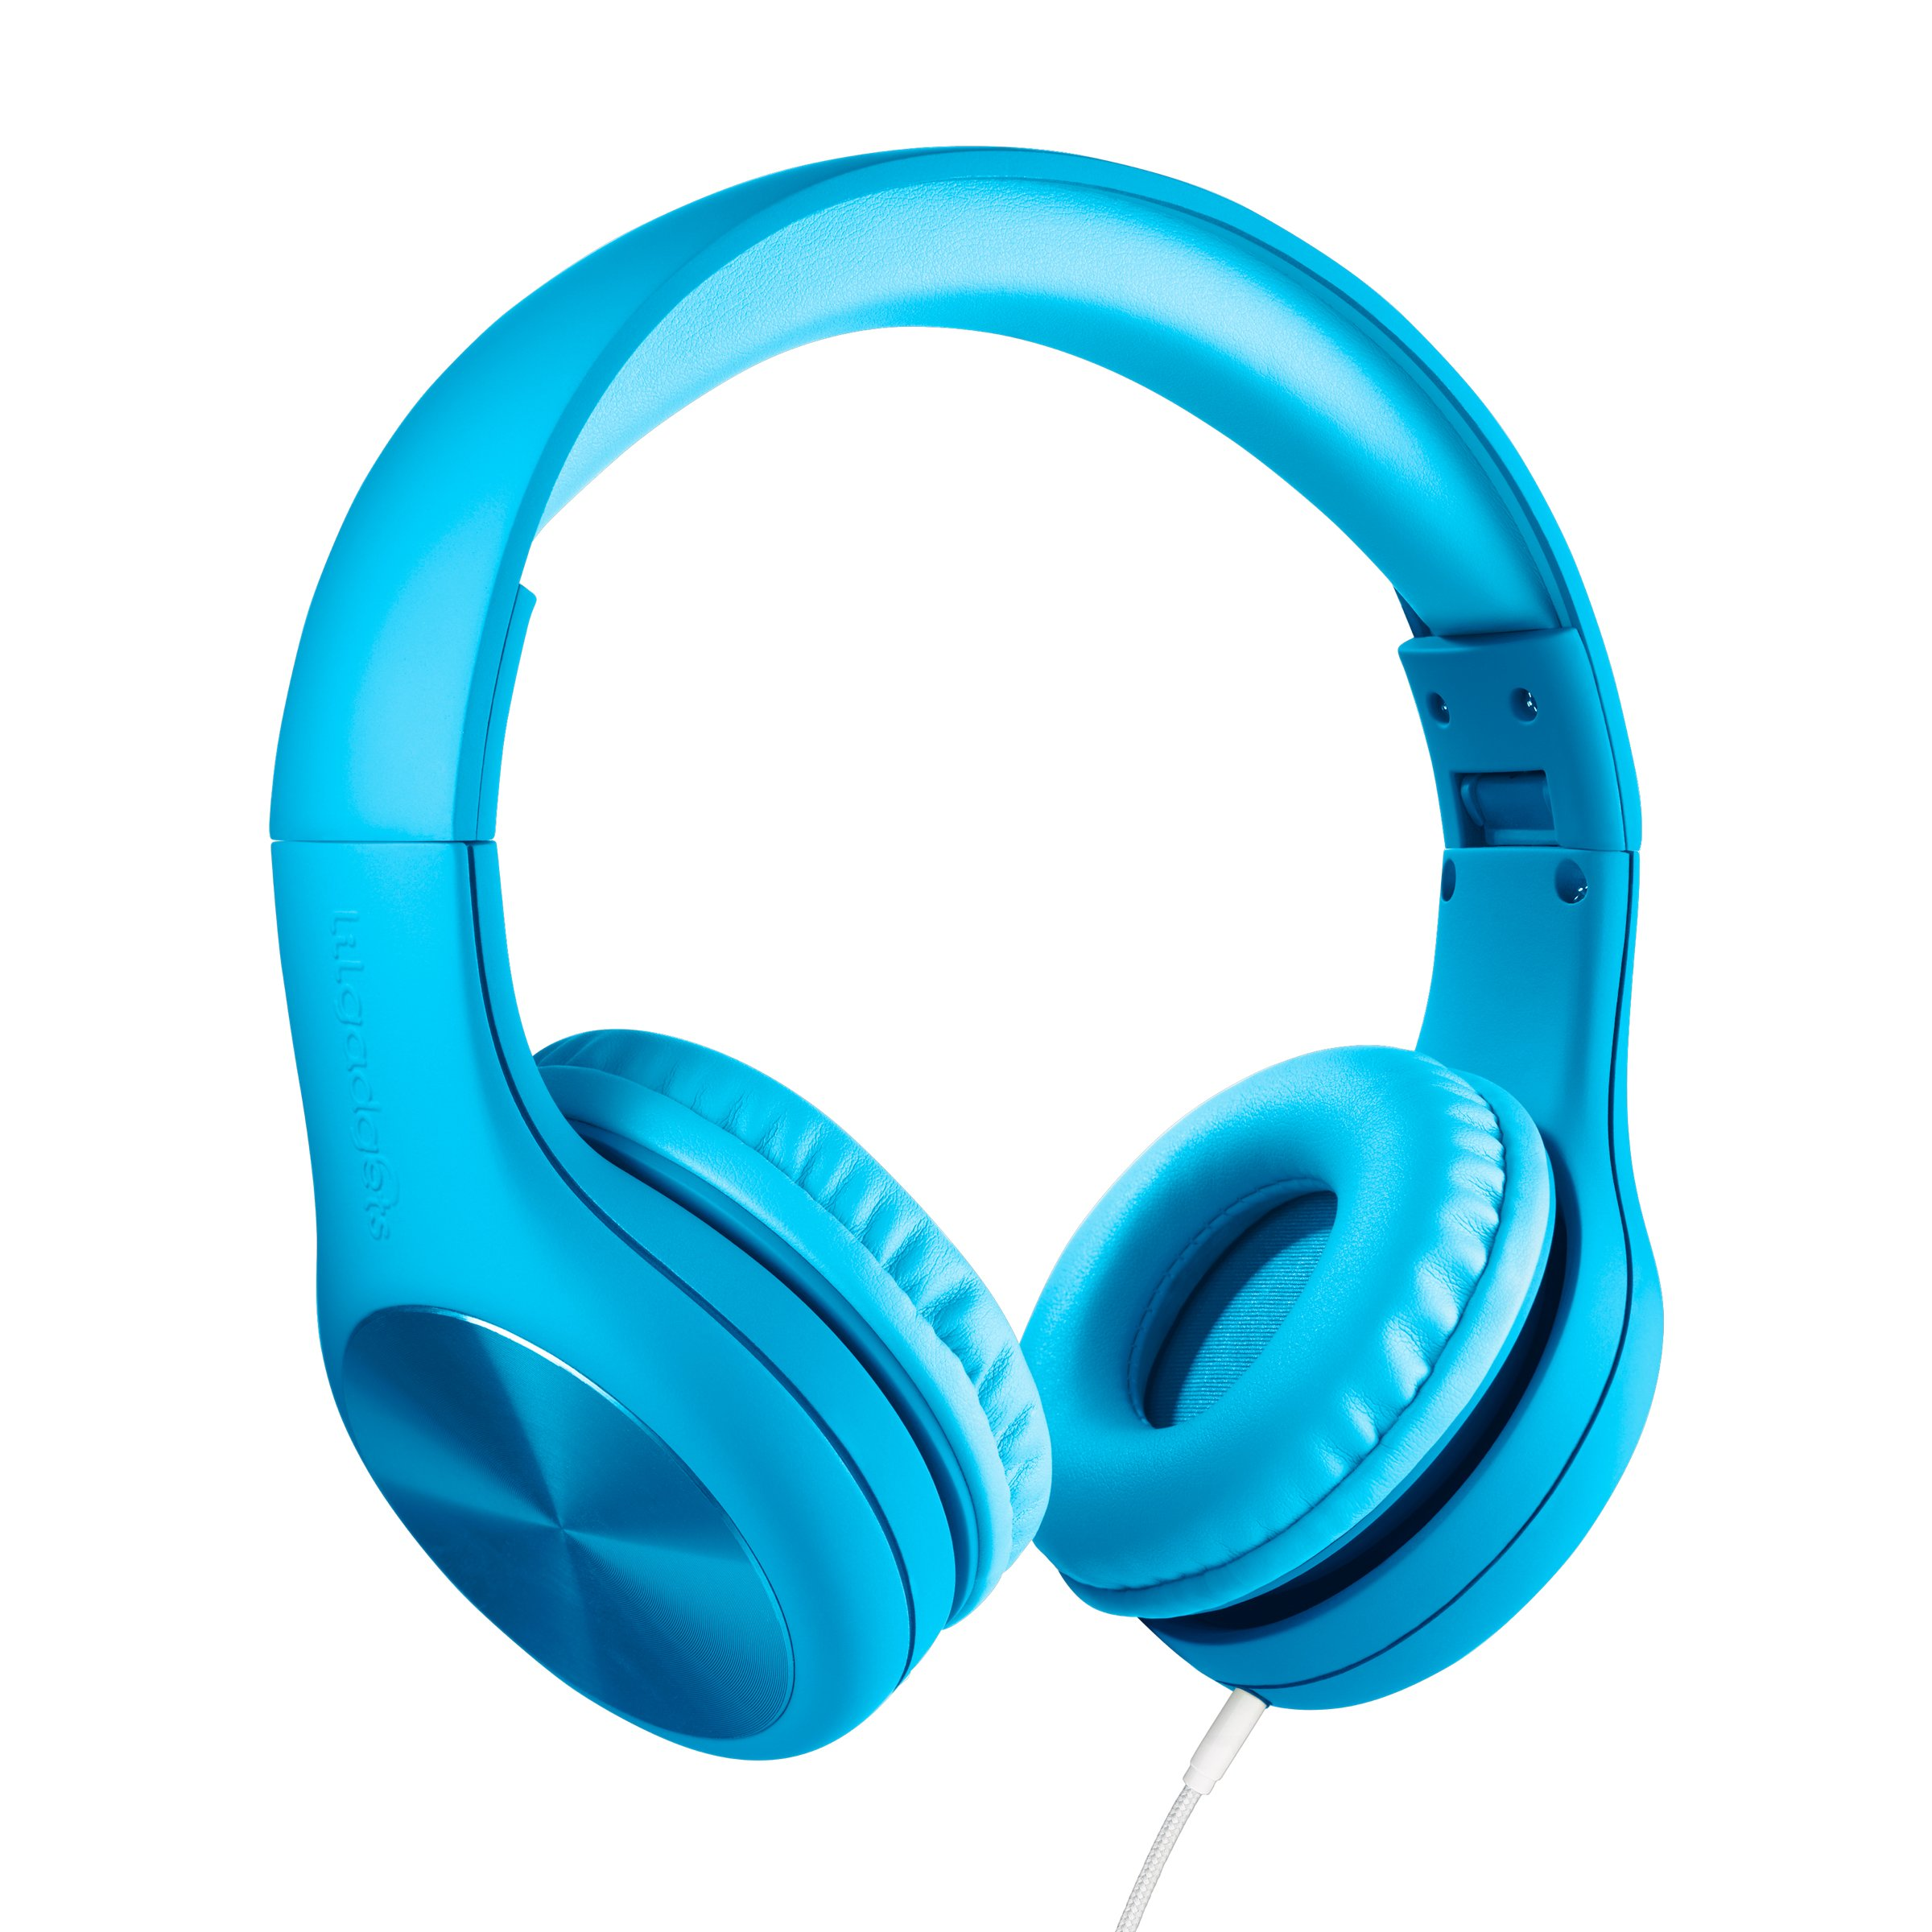 New! LilGadgets Connect+ PRO Kids Premium Volume Limited Wired Headphones with SharePort for Children (Blue)